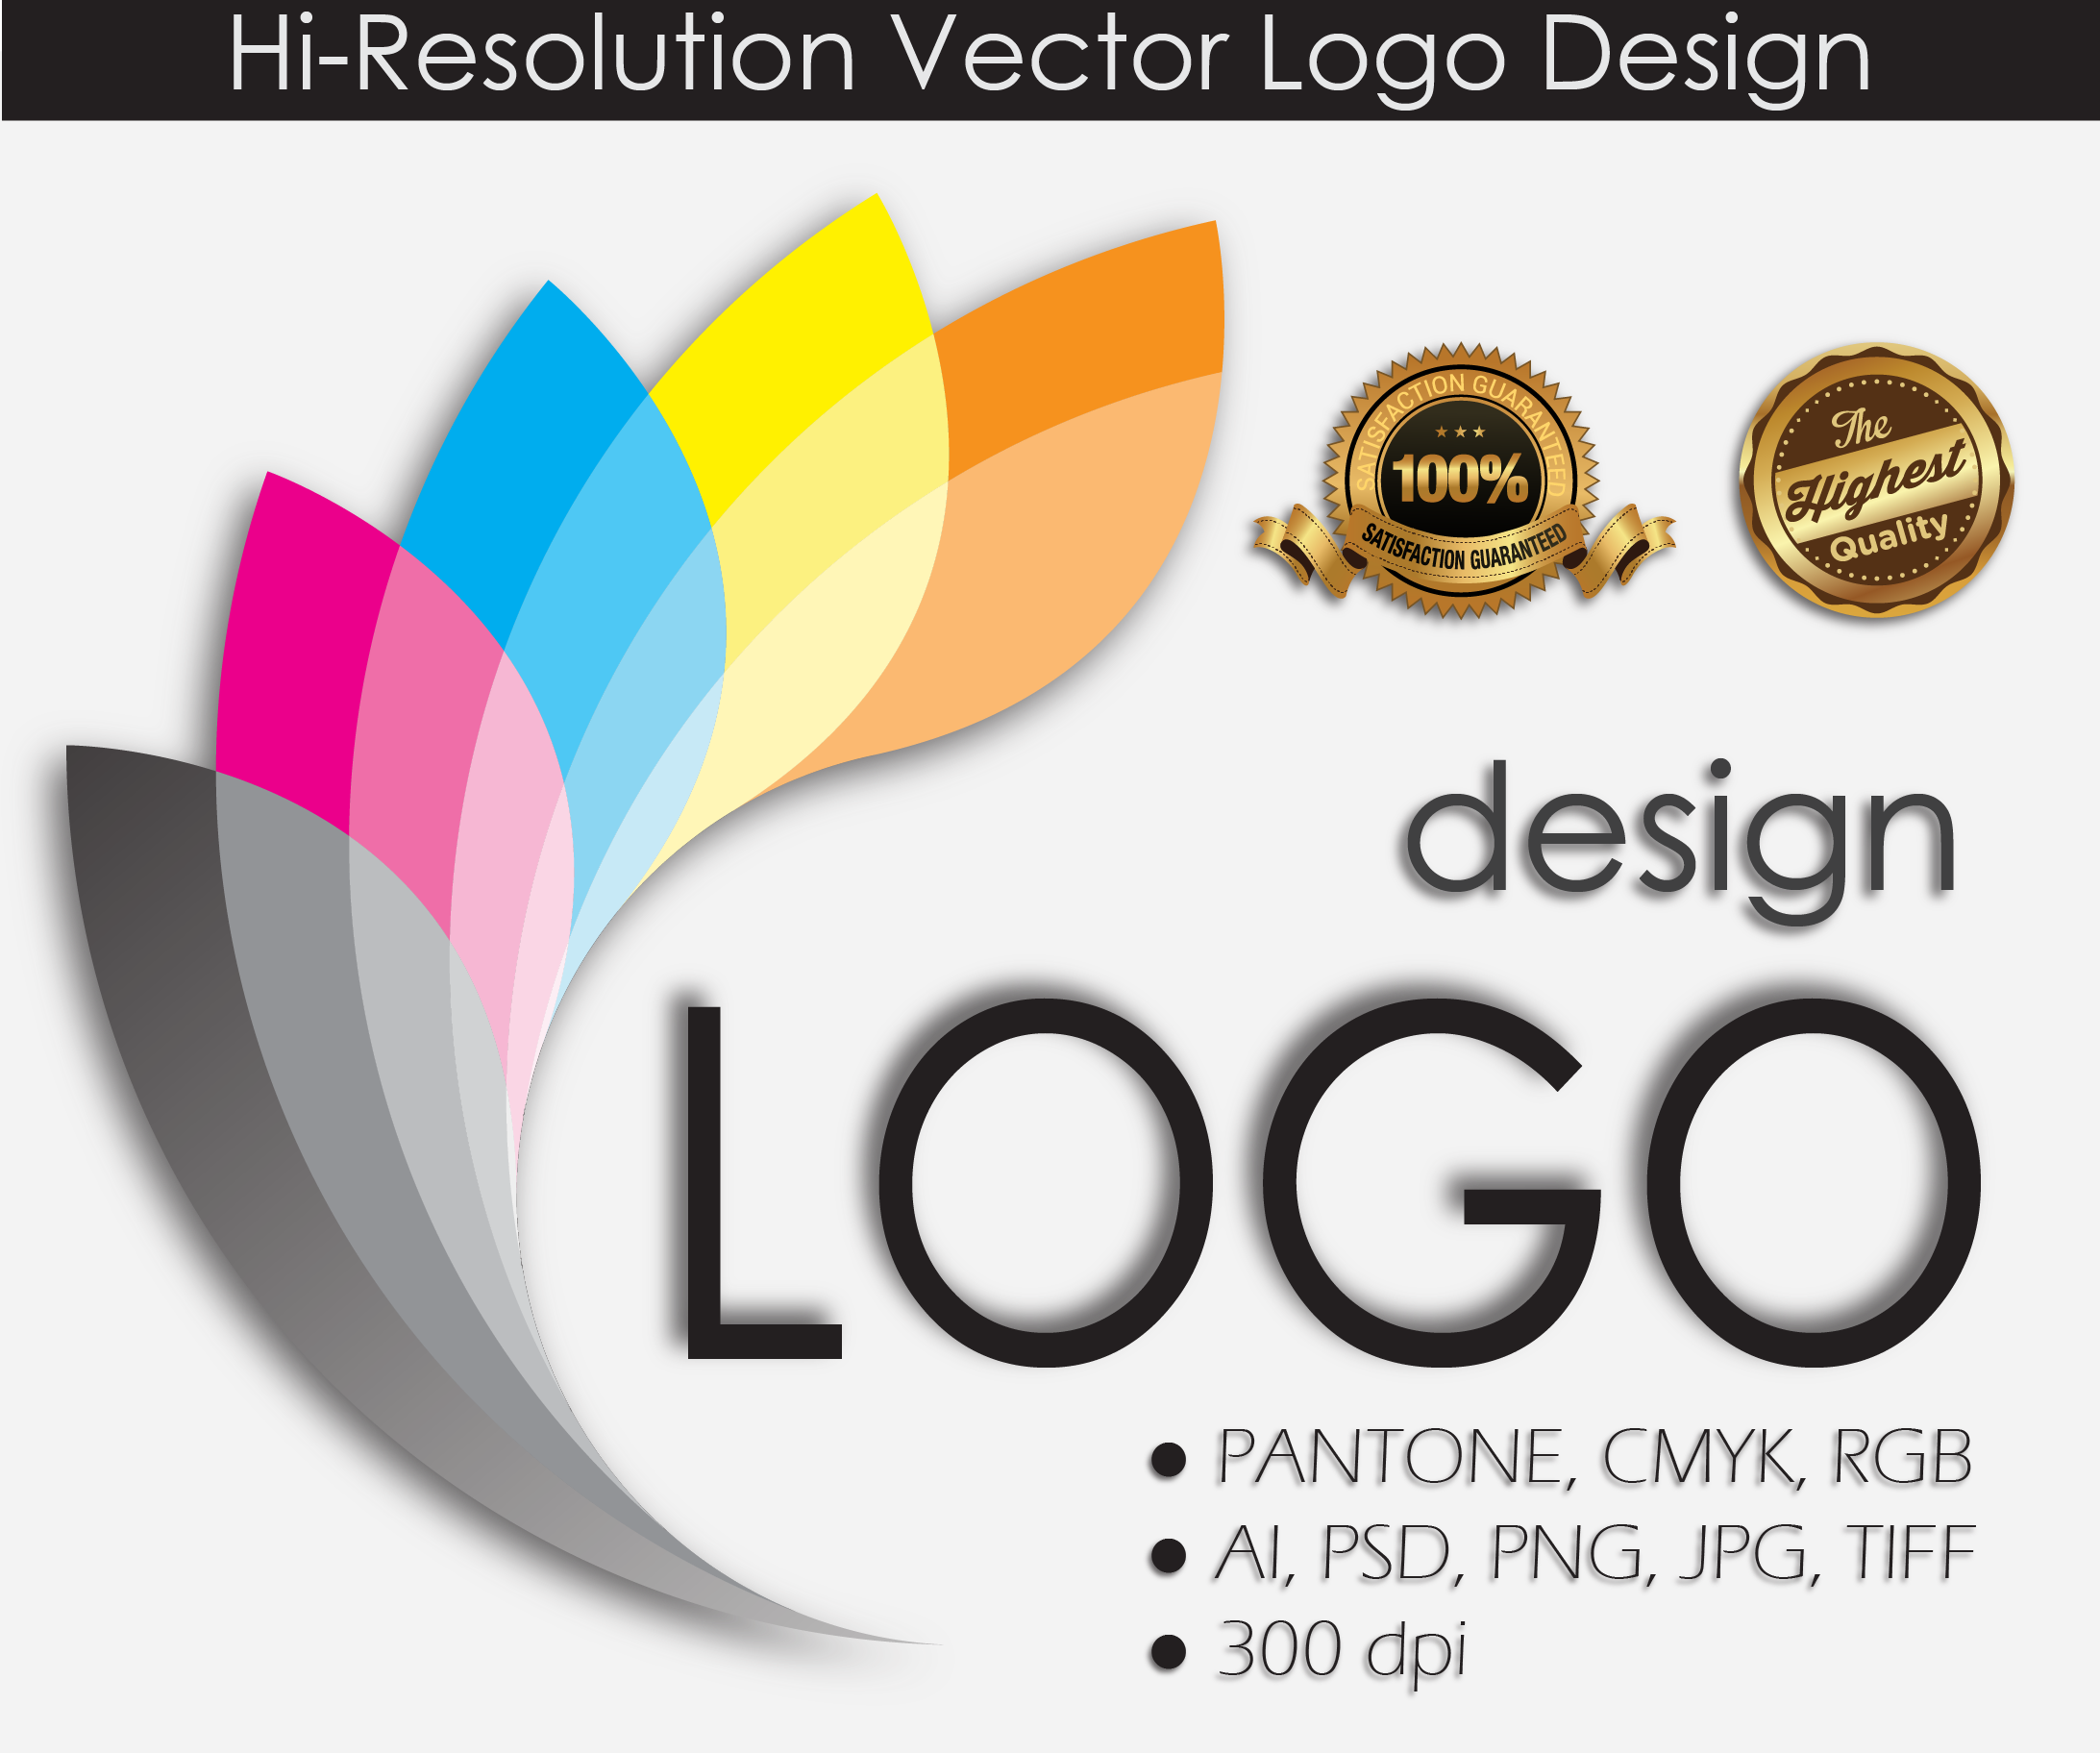 2 Logos With Vector Files